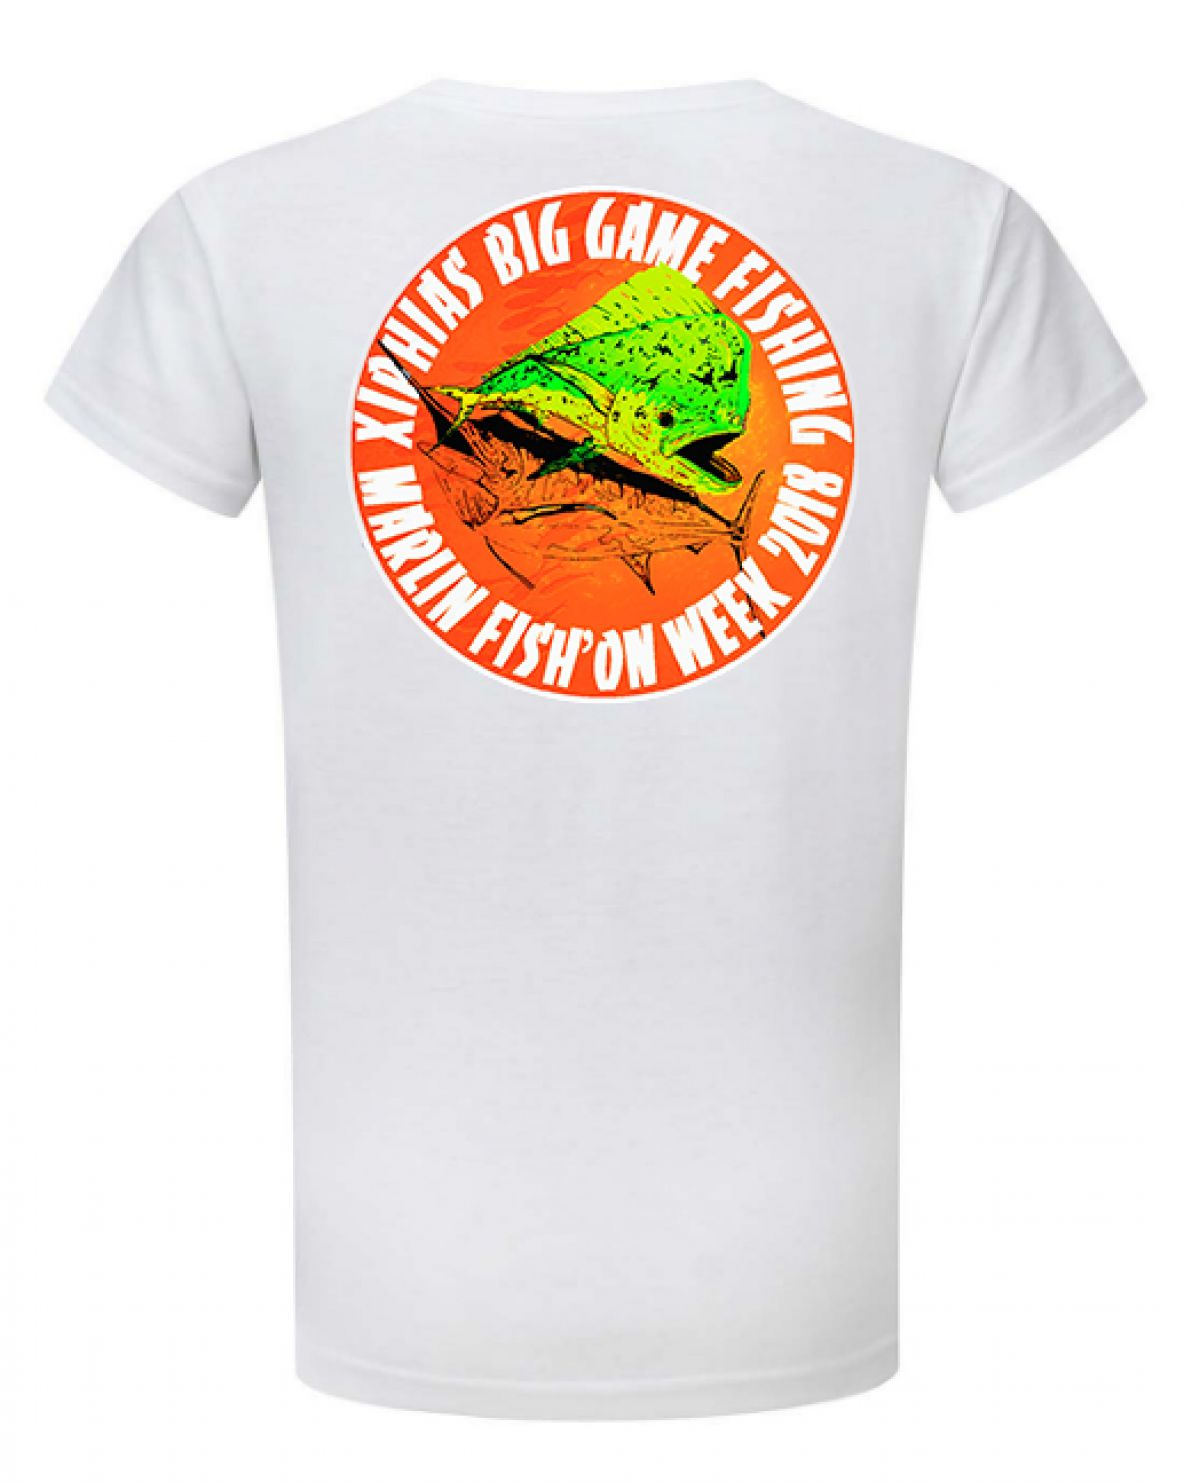 Tee-Shirt Xiphias Big Game Fishing Ref 4